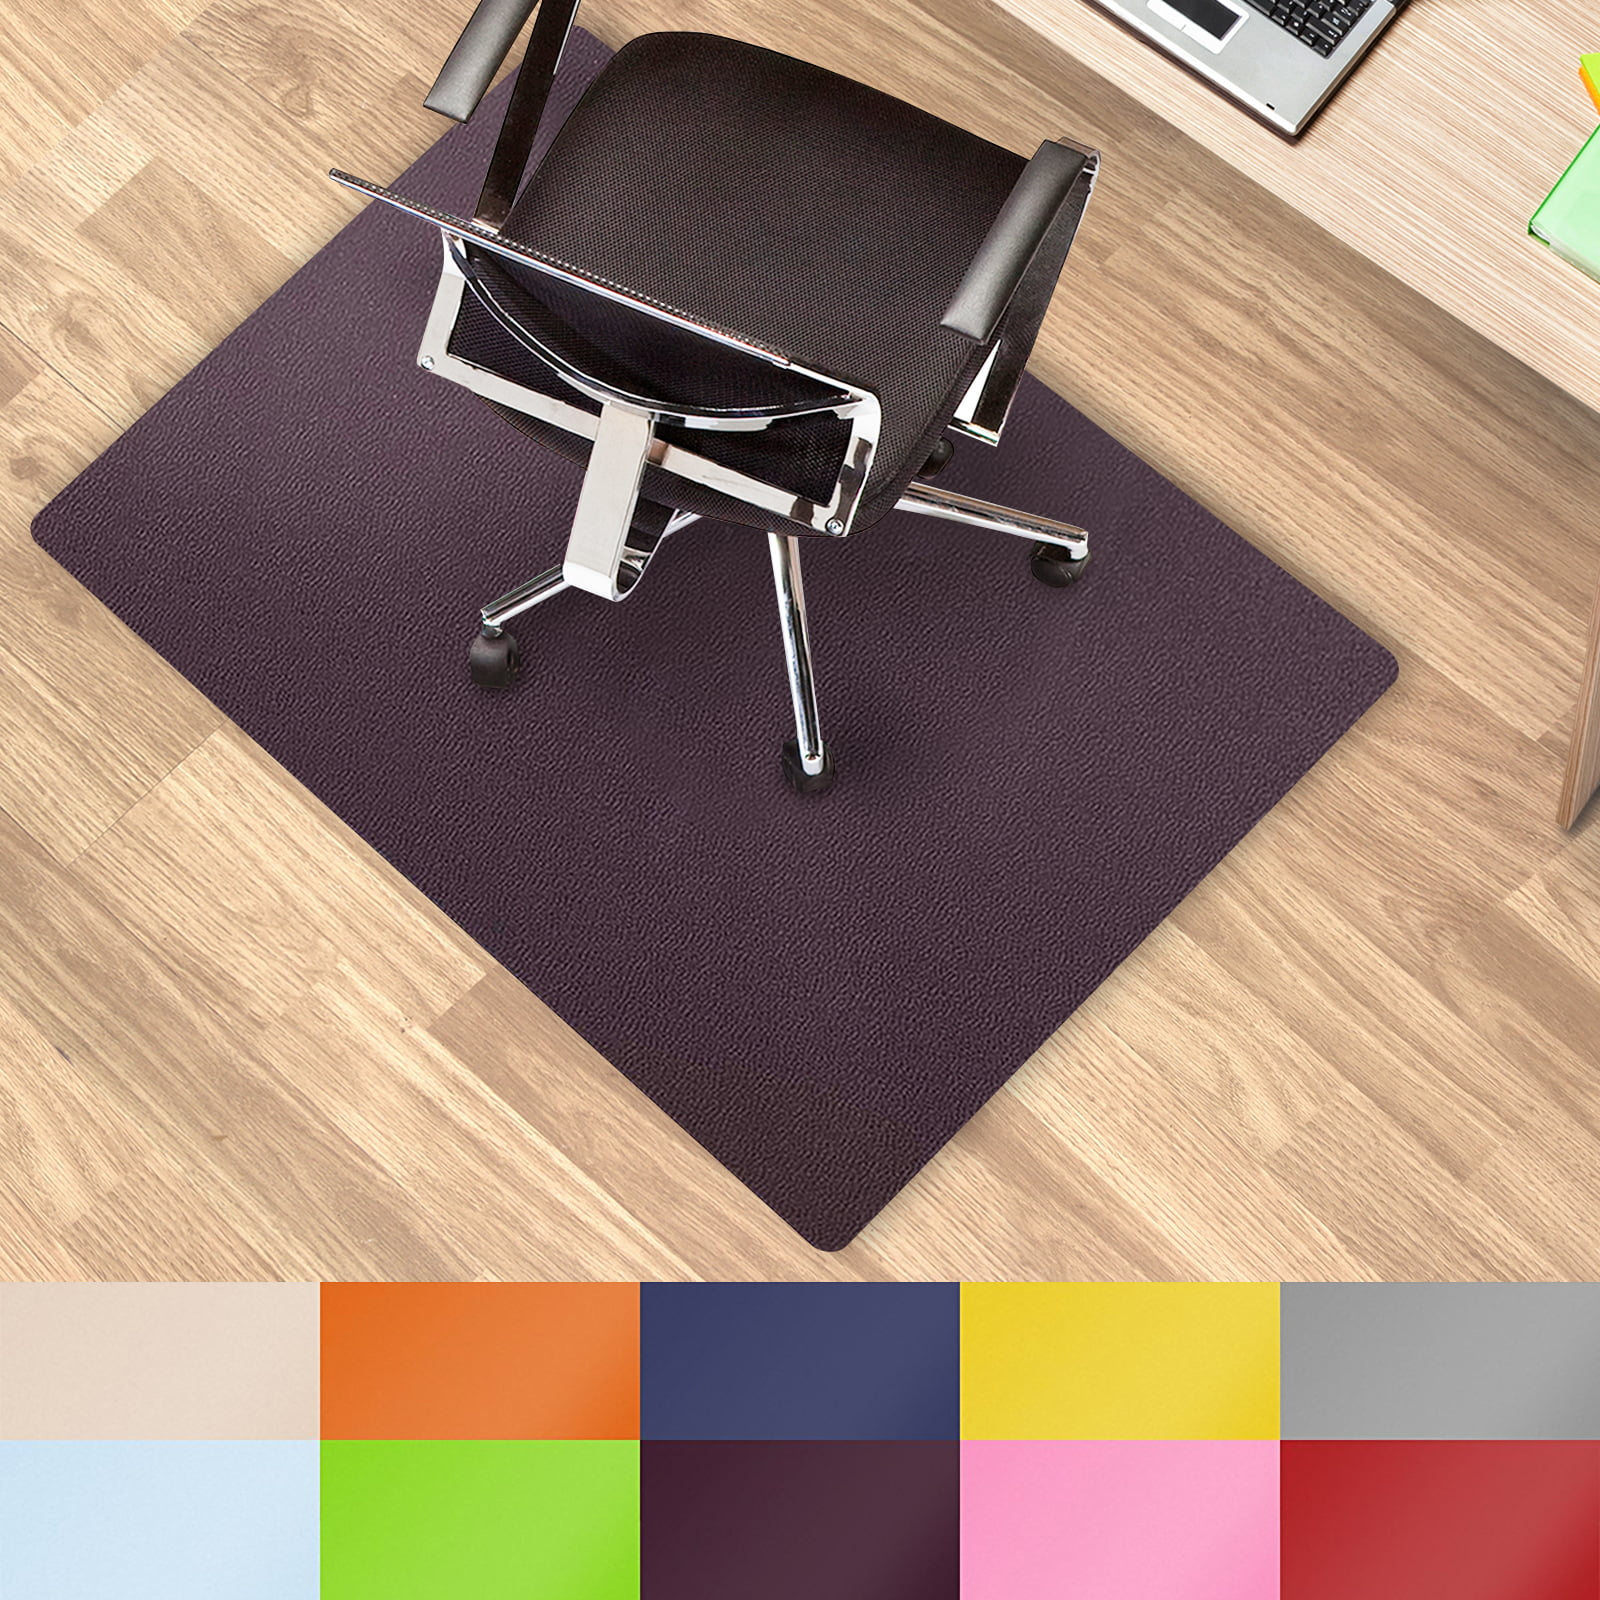 Chair Mat For Hard Floors Polypropylene Chair Floor